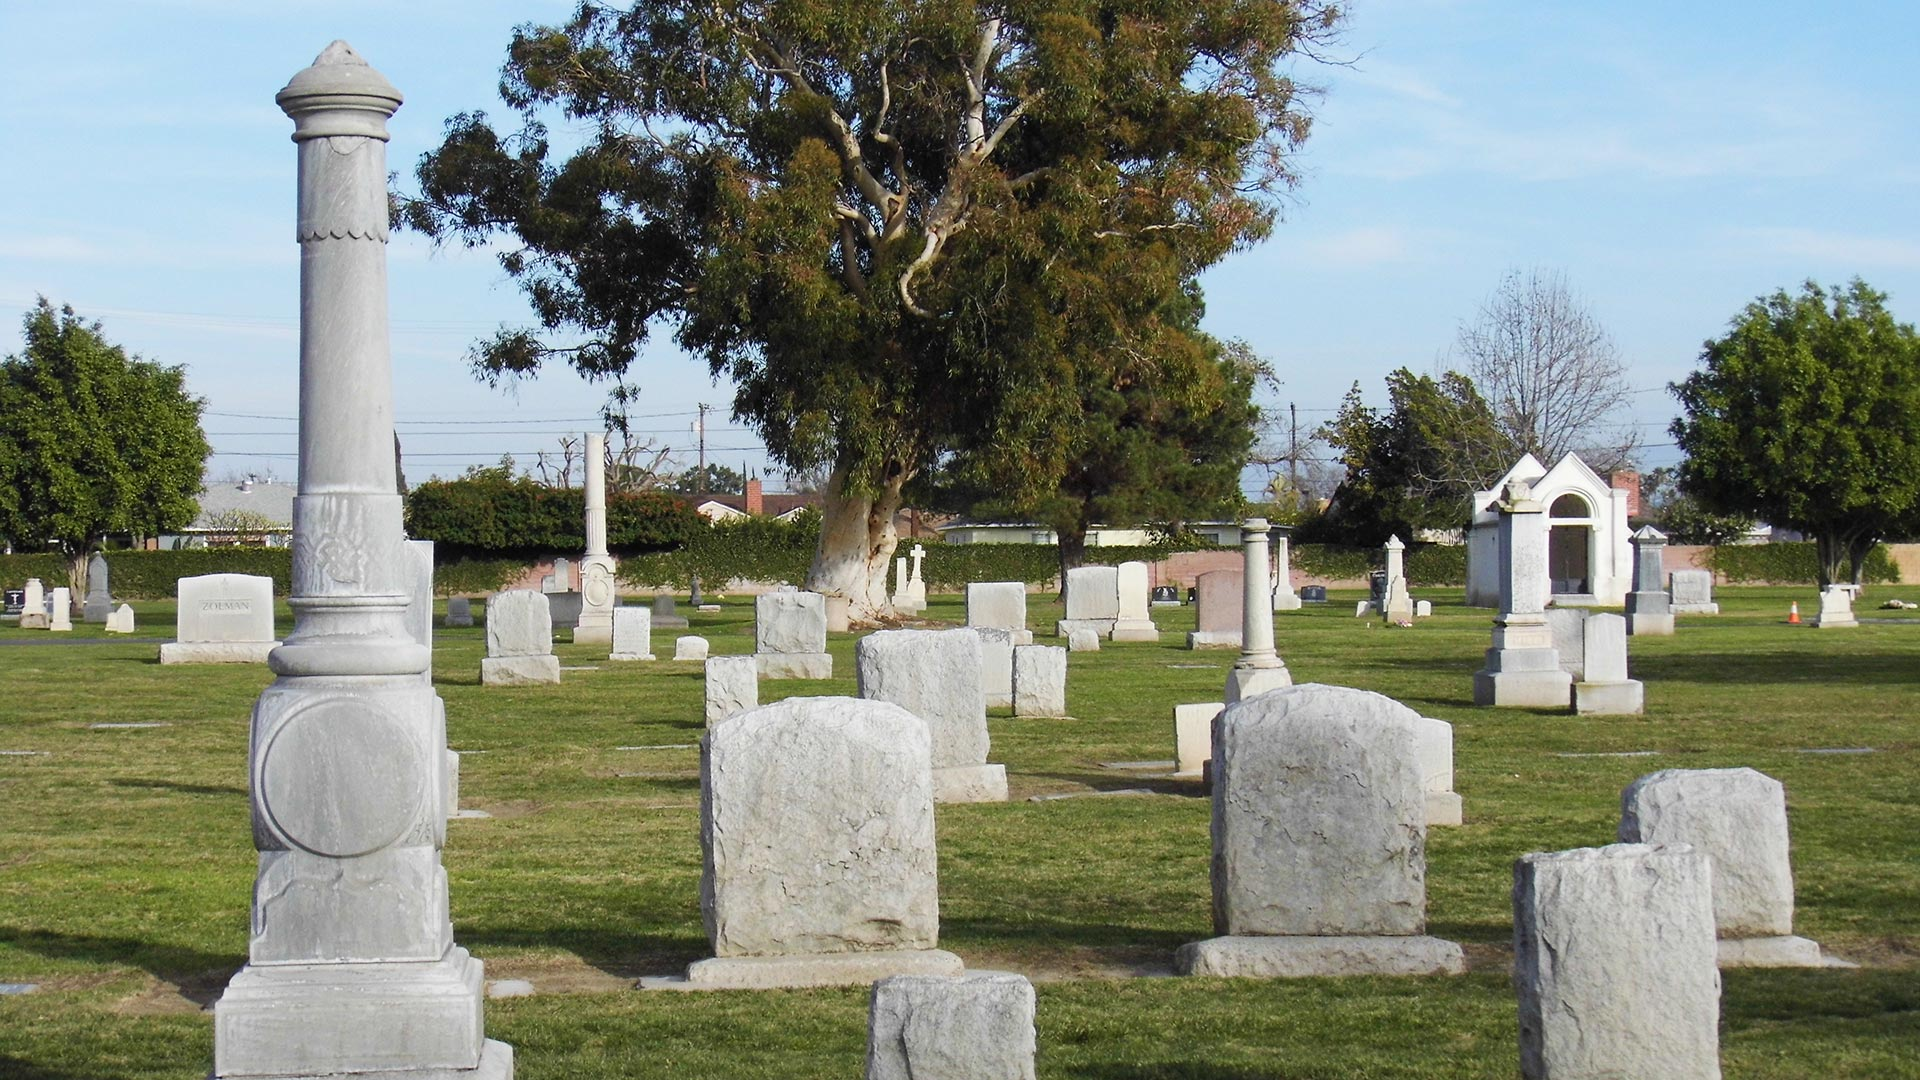 A line of tombstones from the Anaheim Cemetery.